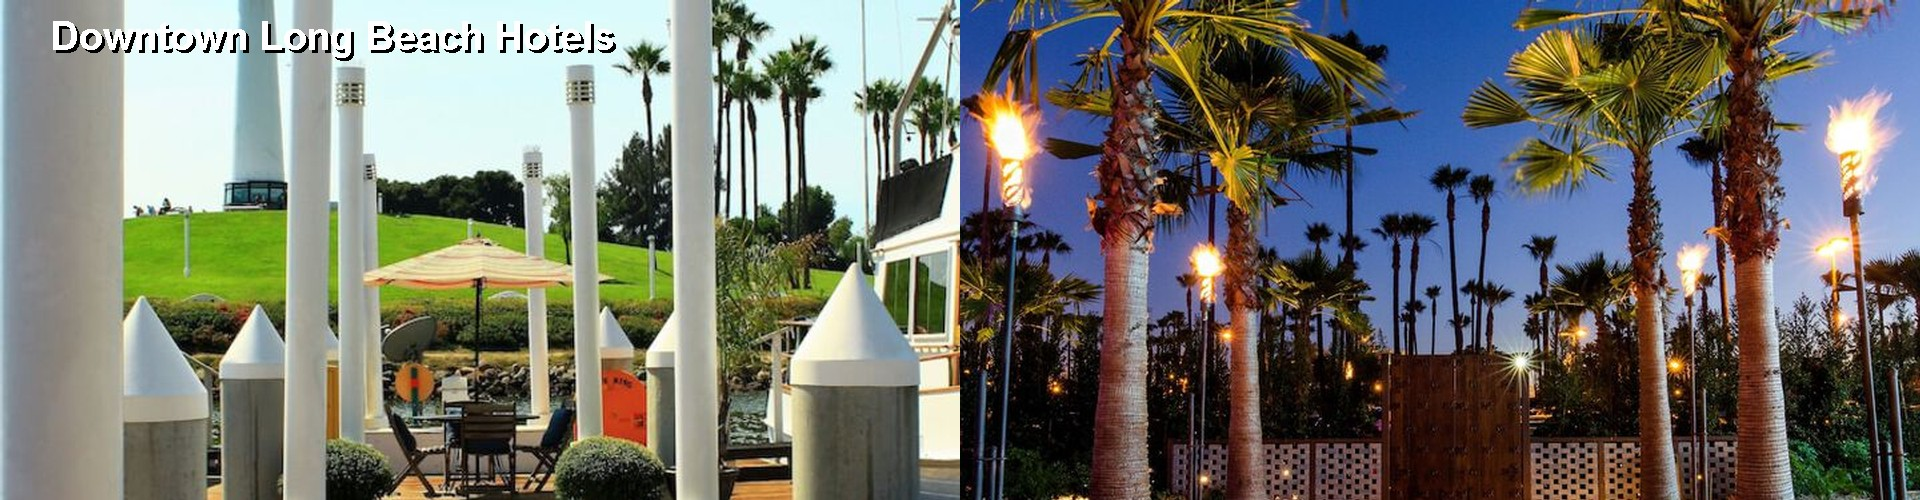 5 Best Hotels near Downtown Long Beach